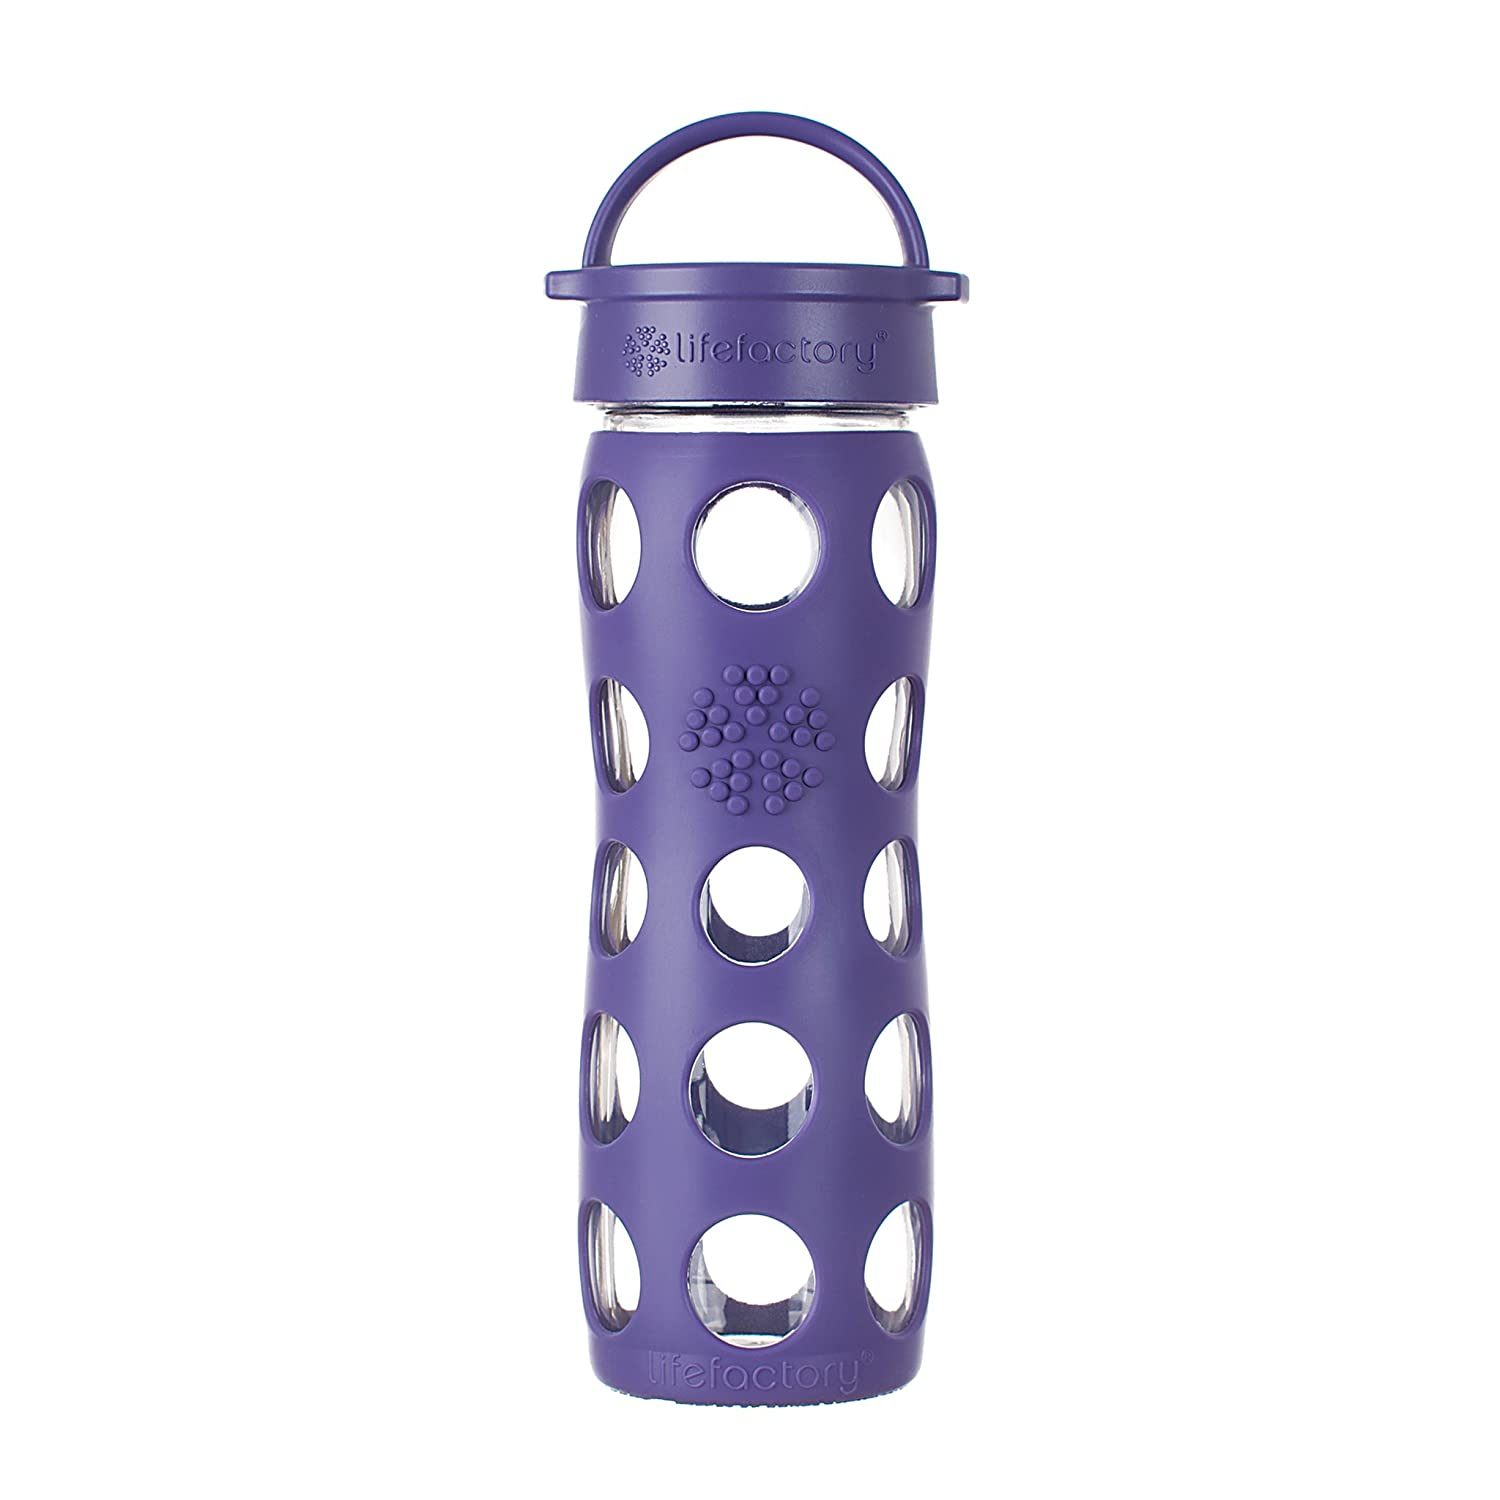 Lifefactory 13826 - Botella de biberón de vidrio, 470 ml, color morado: Amazon.es: Hogar